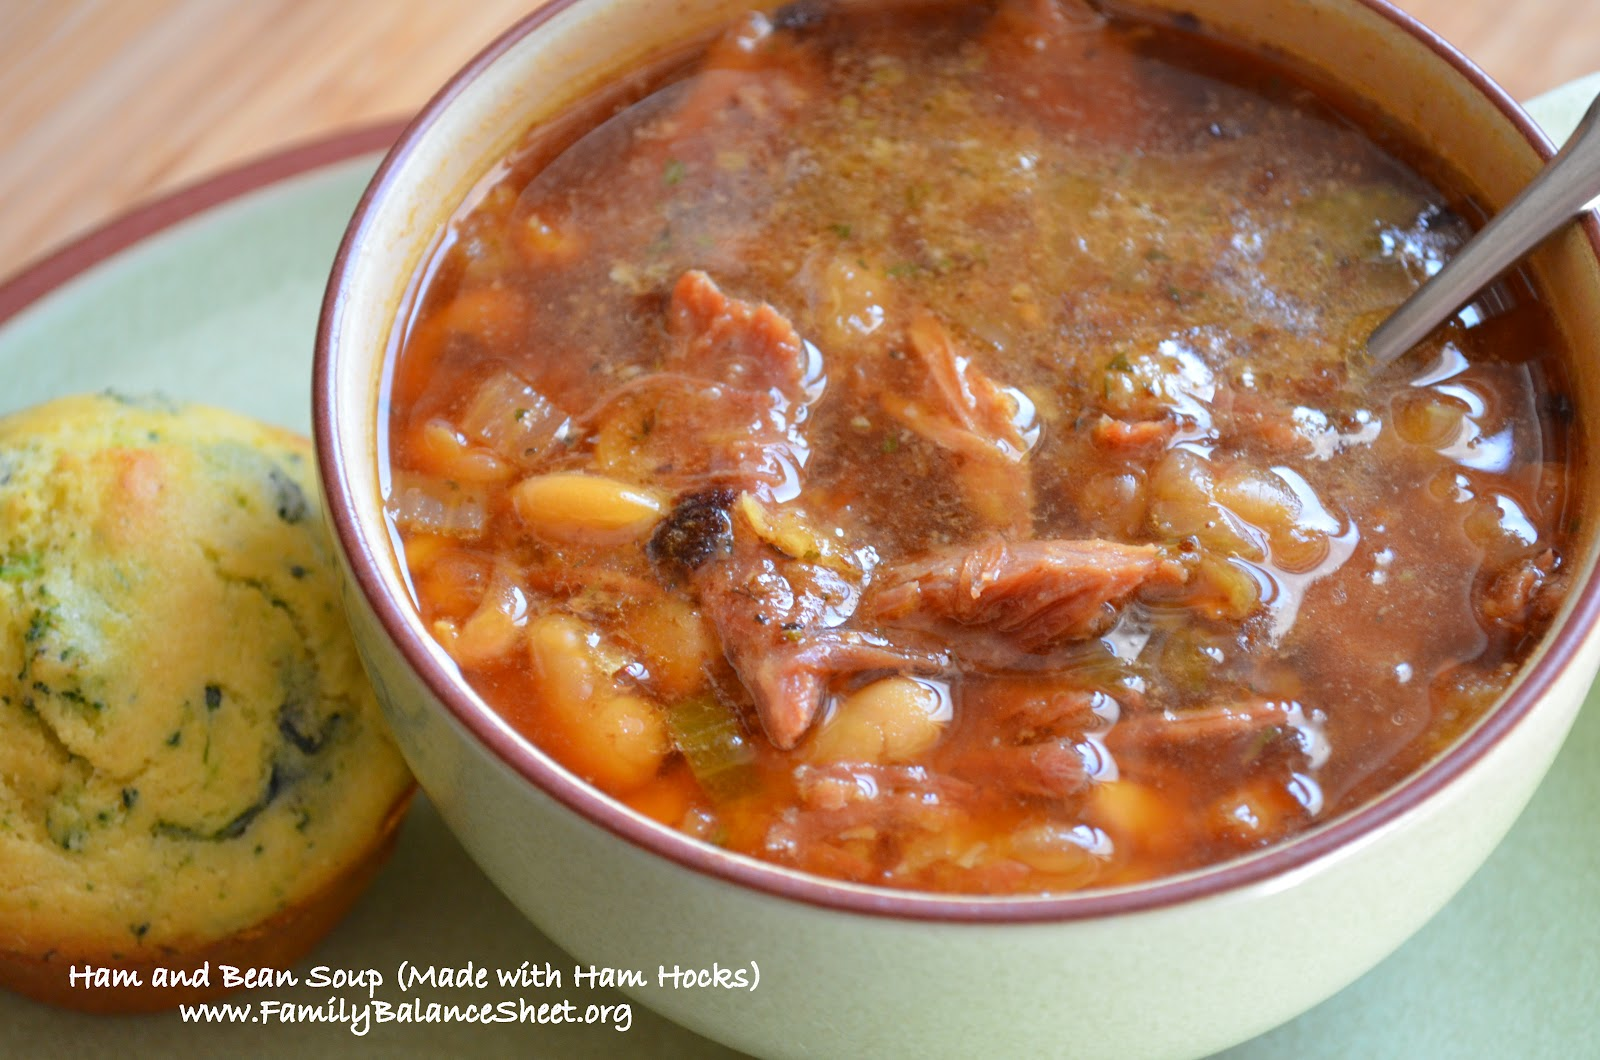 Ham and Bean Soup (Made with Ham Hocks) - Family Balance Sheet